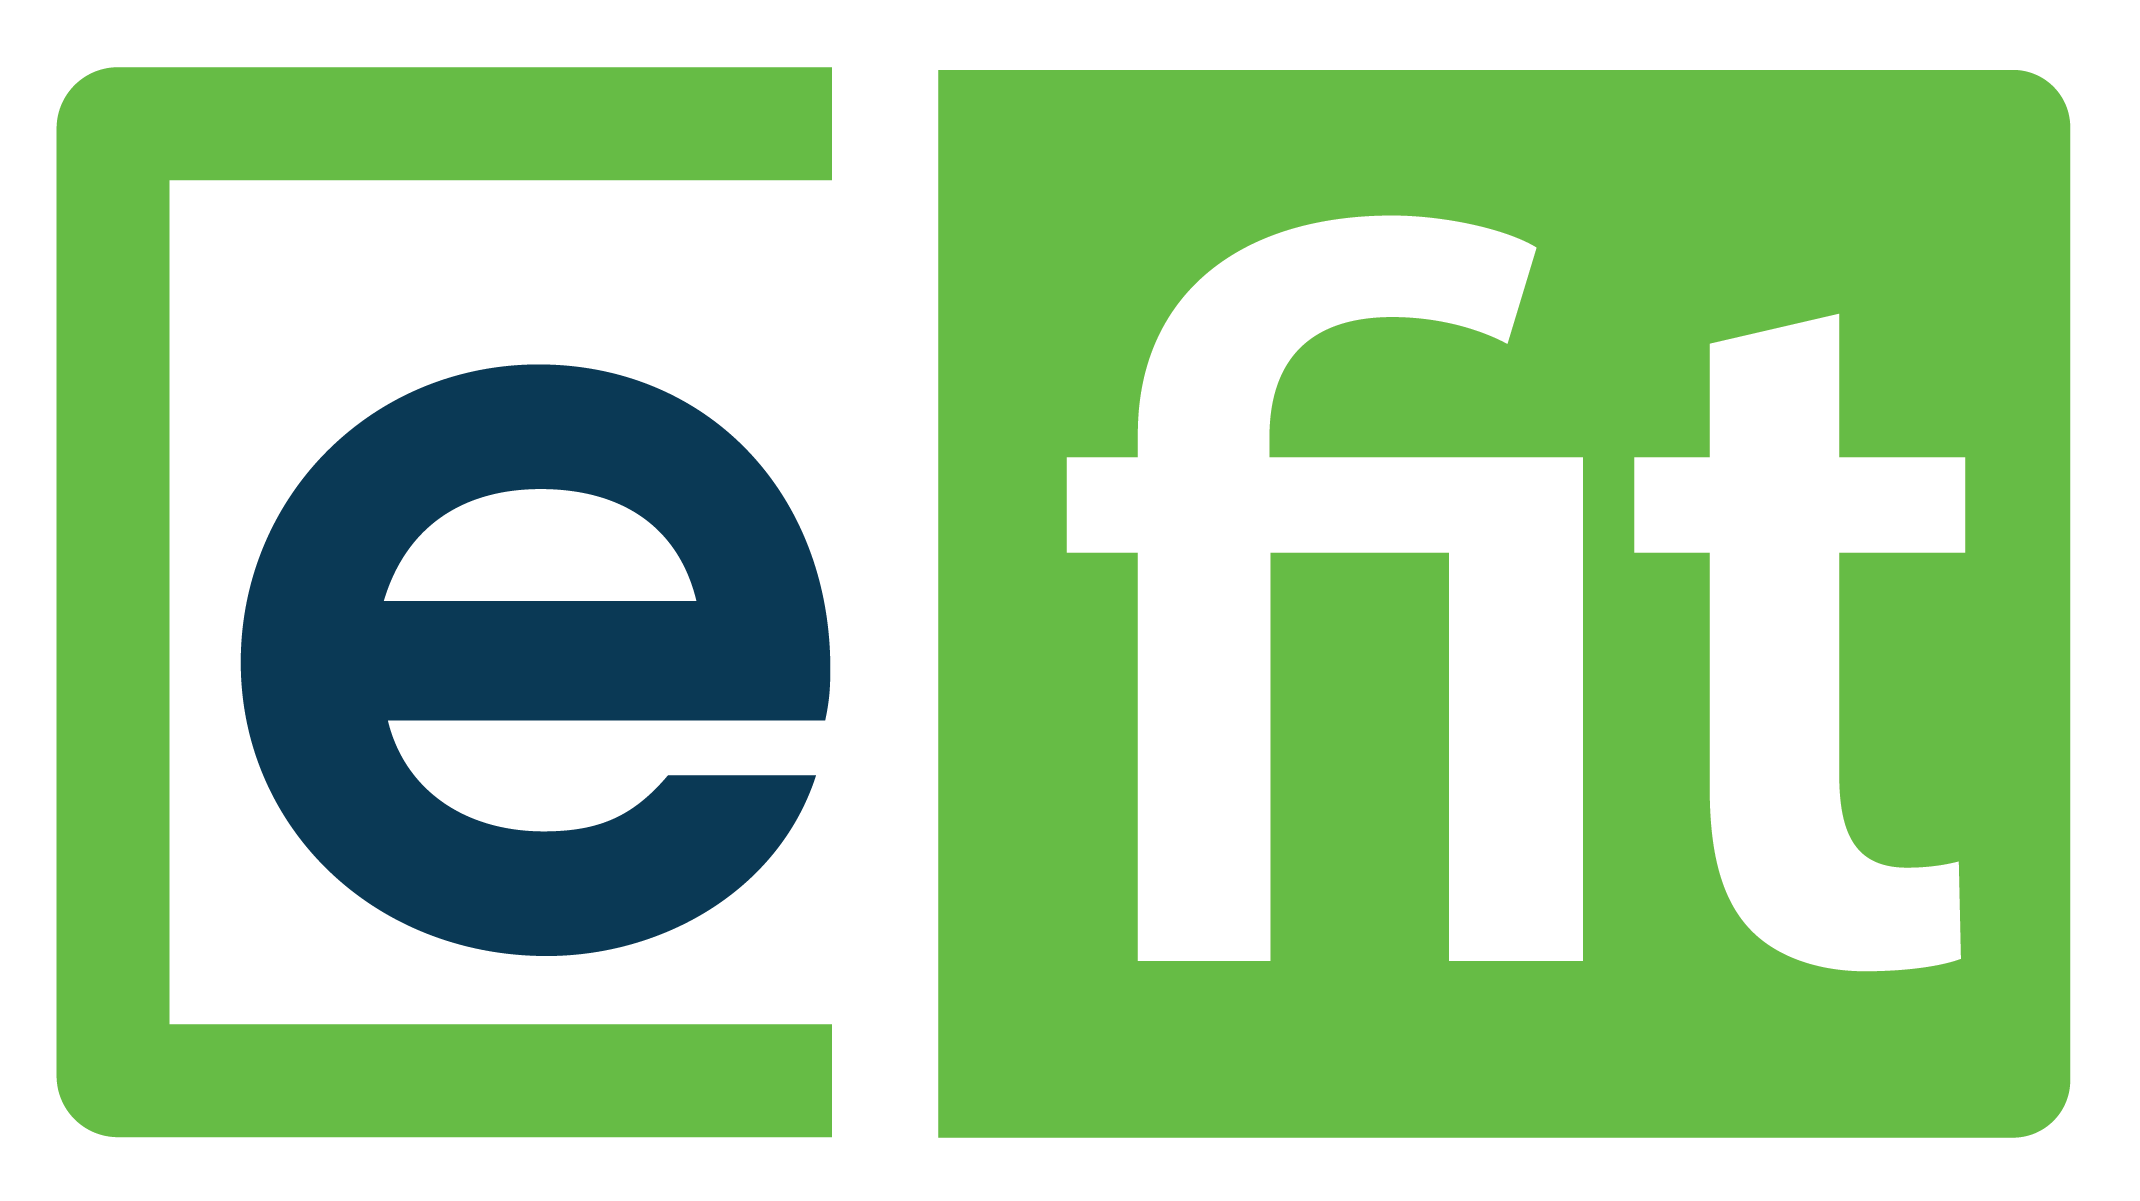 eFit Financial logo